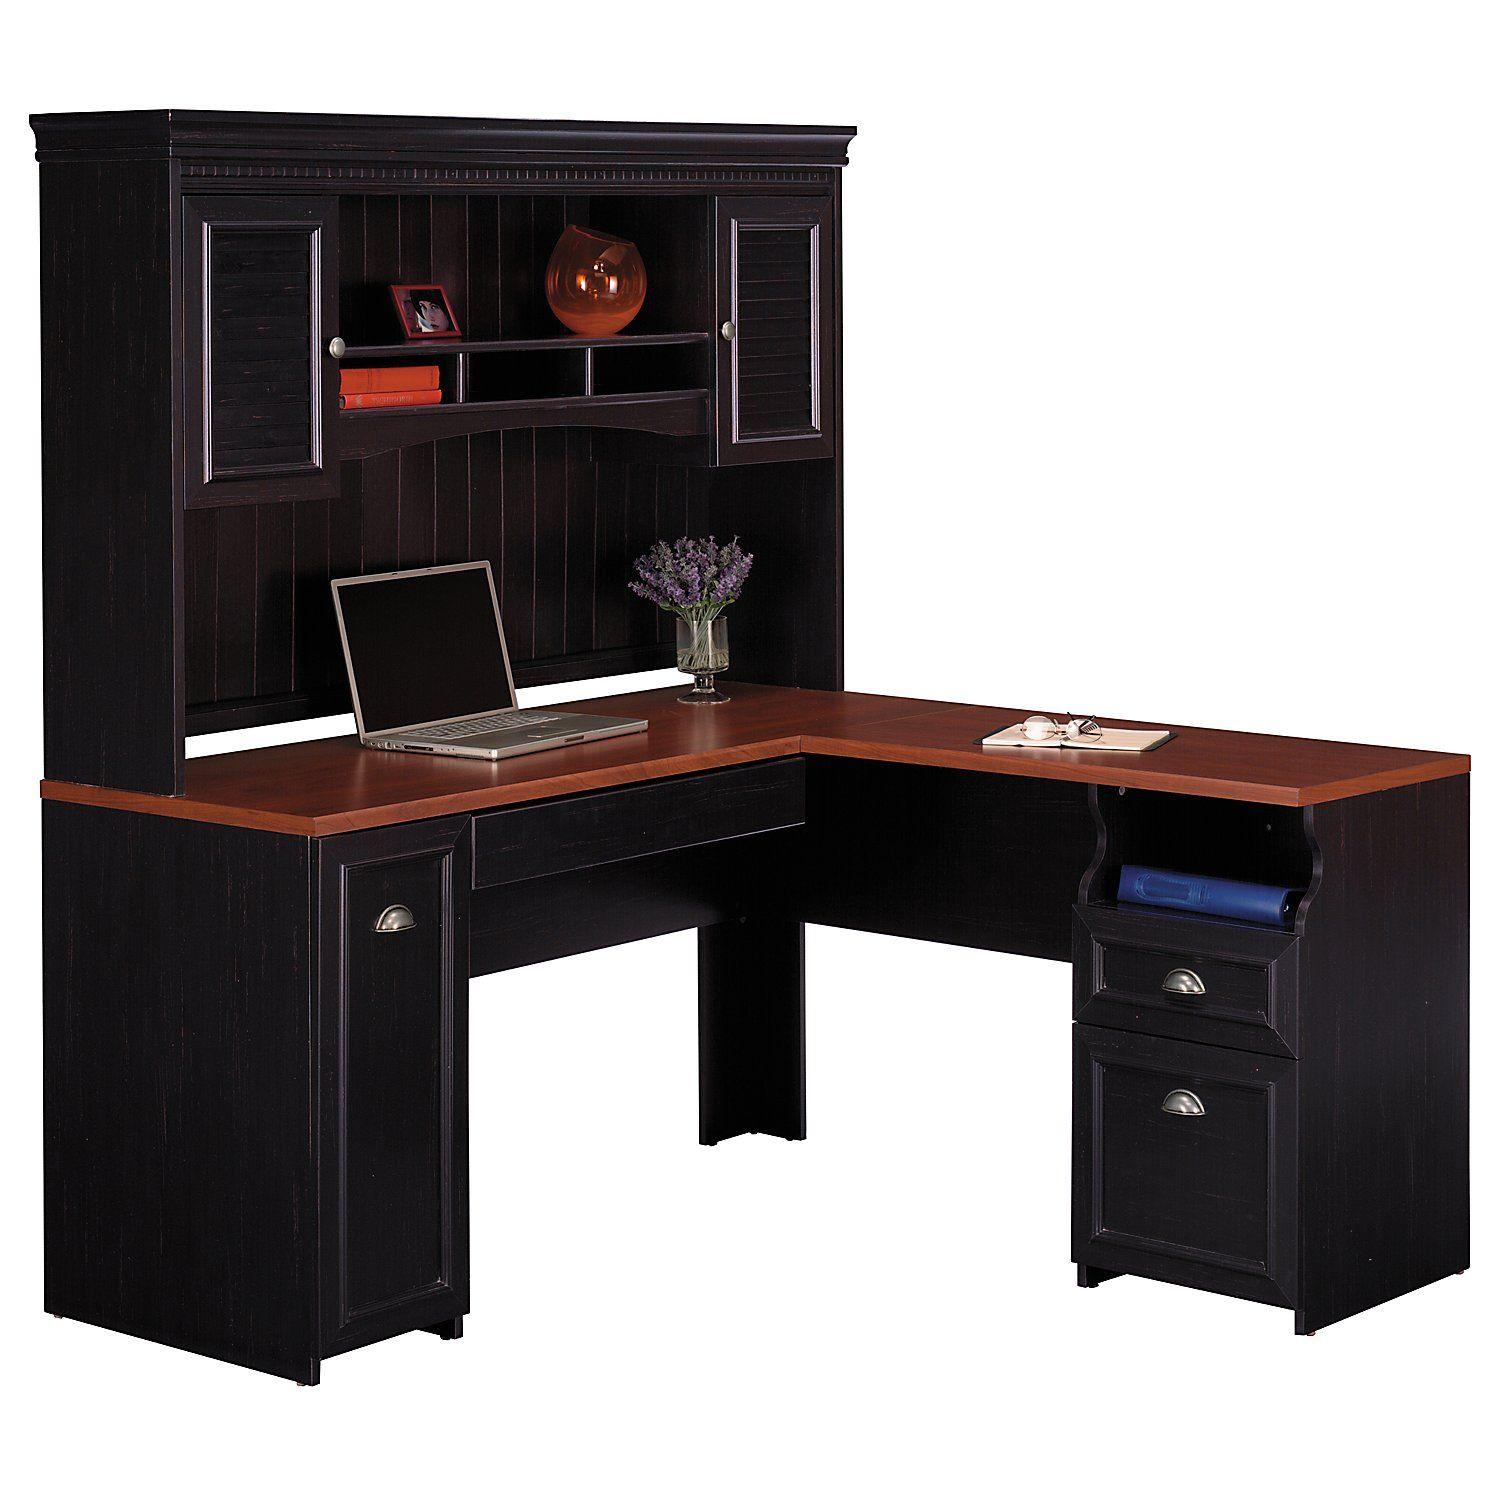 Desk Home Office Furniture Small Black With Red Oak Glossy L Shaped Computer